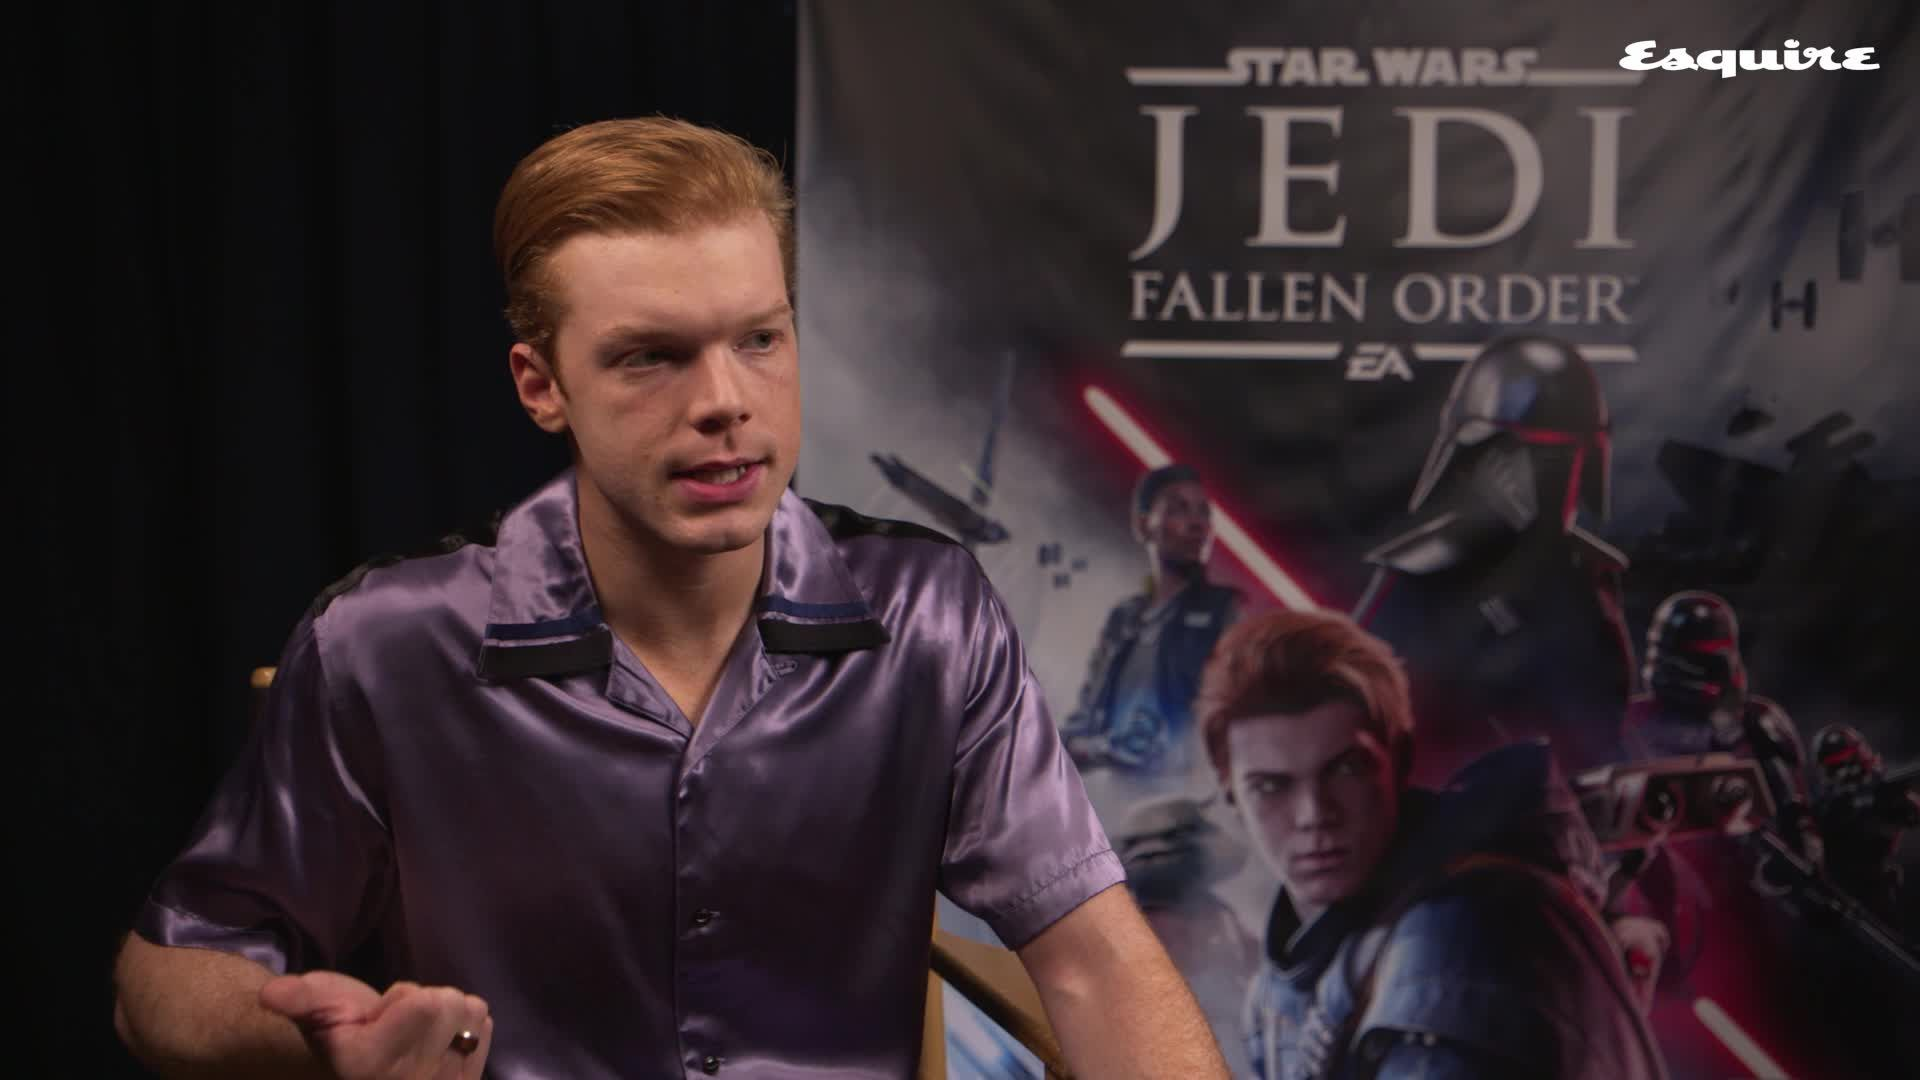 Cameron Monaghan Says Star Wars Jedi: Fallen Order Introduces a 'Unique' Hero to the Franchise